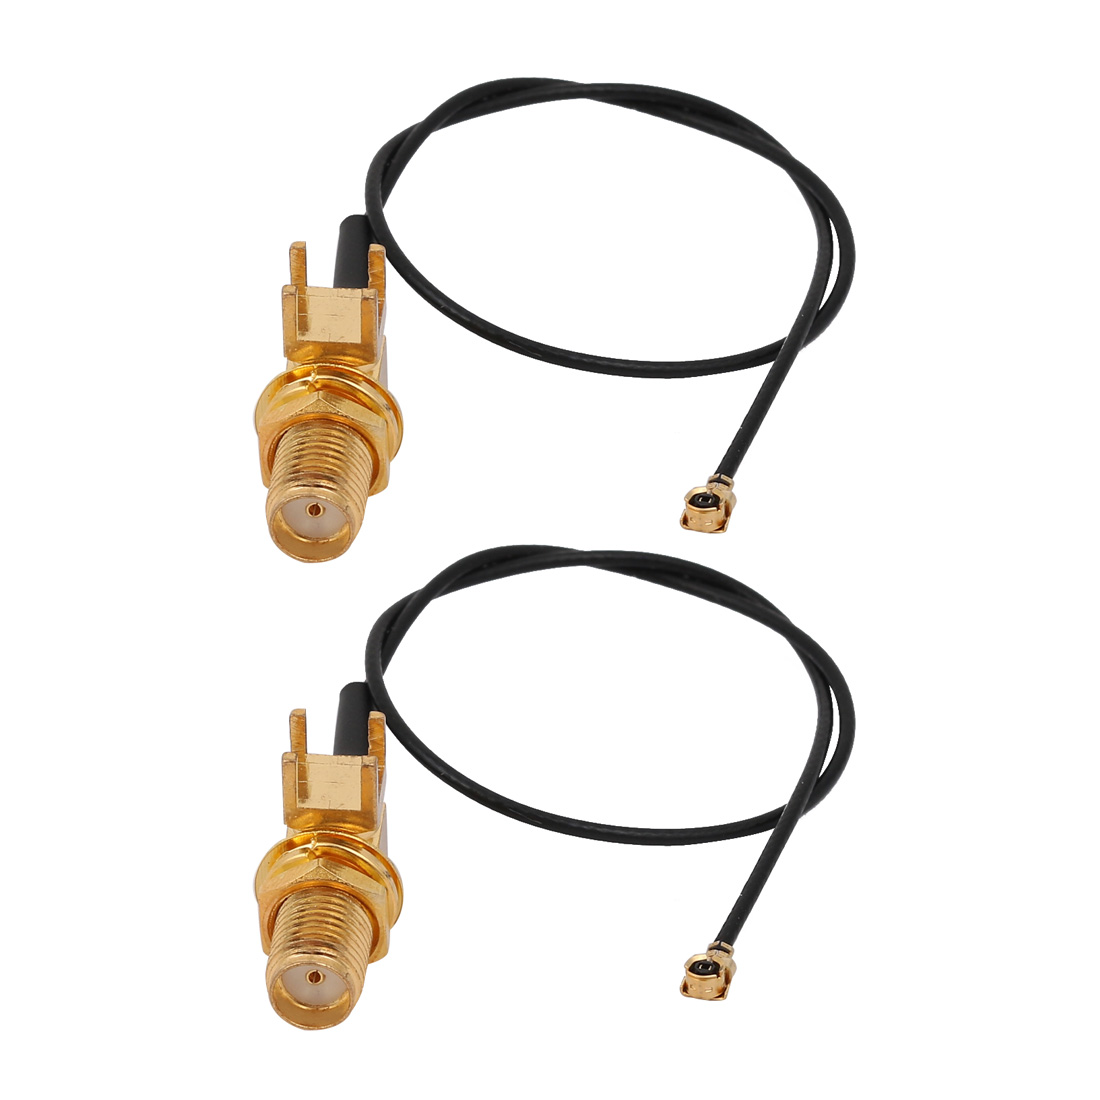 2 Pcs RF1.13 IPEX1 to SMA-KE Connector WiFi Pigtail Cable Antenna 20cm Long